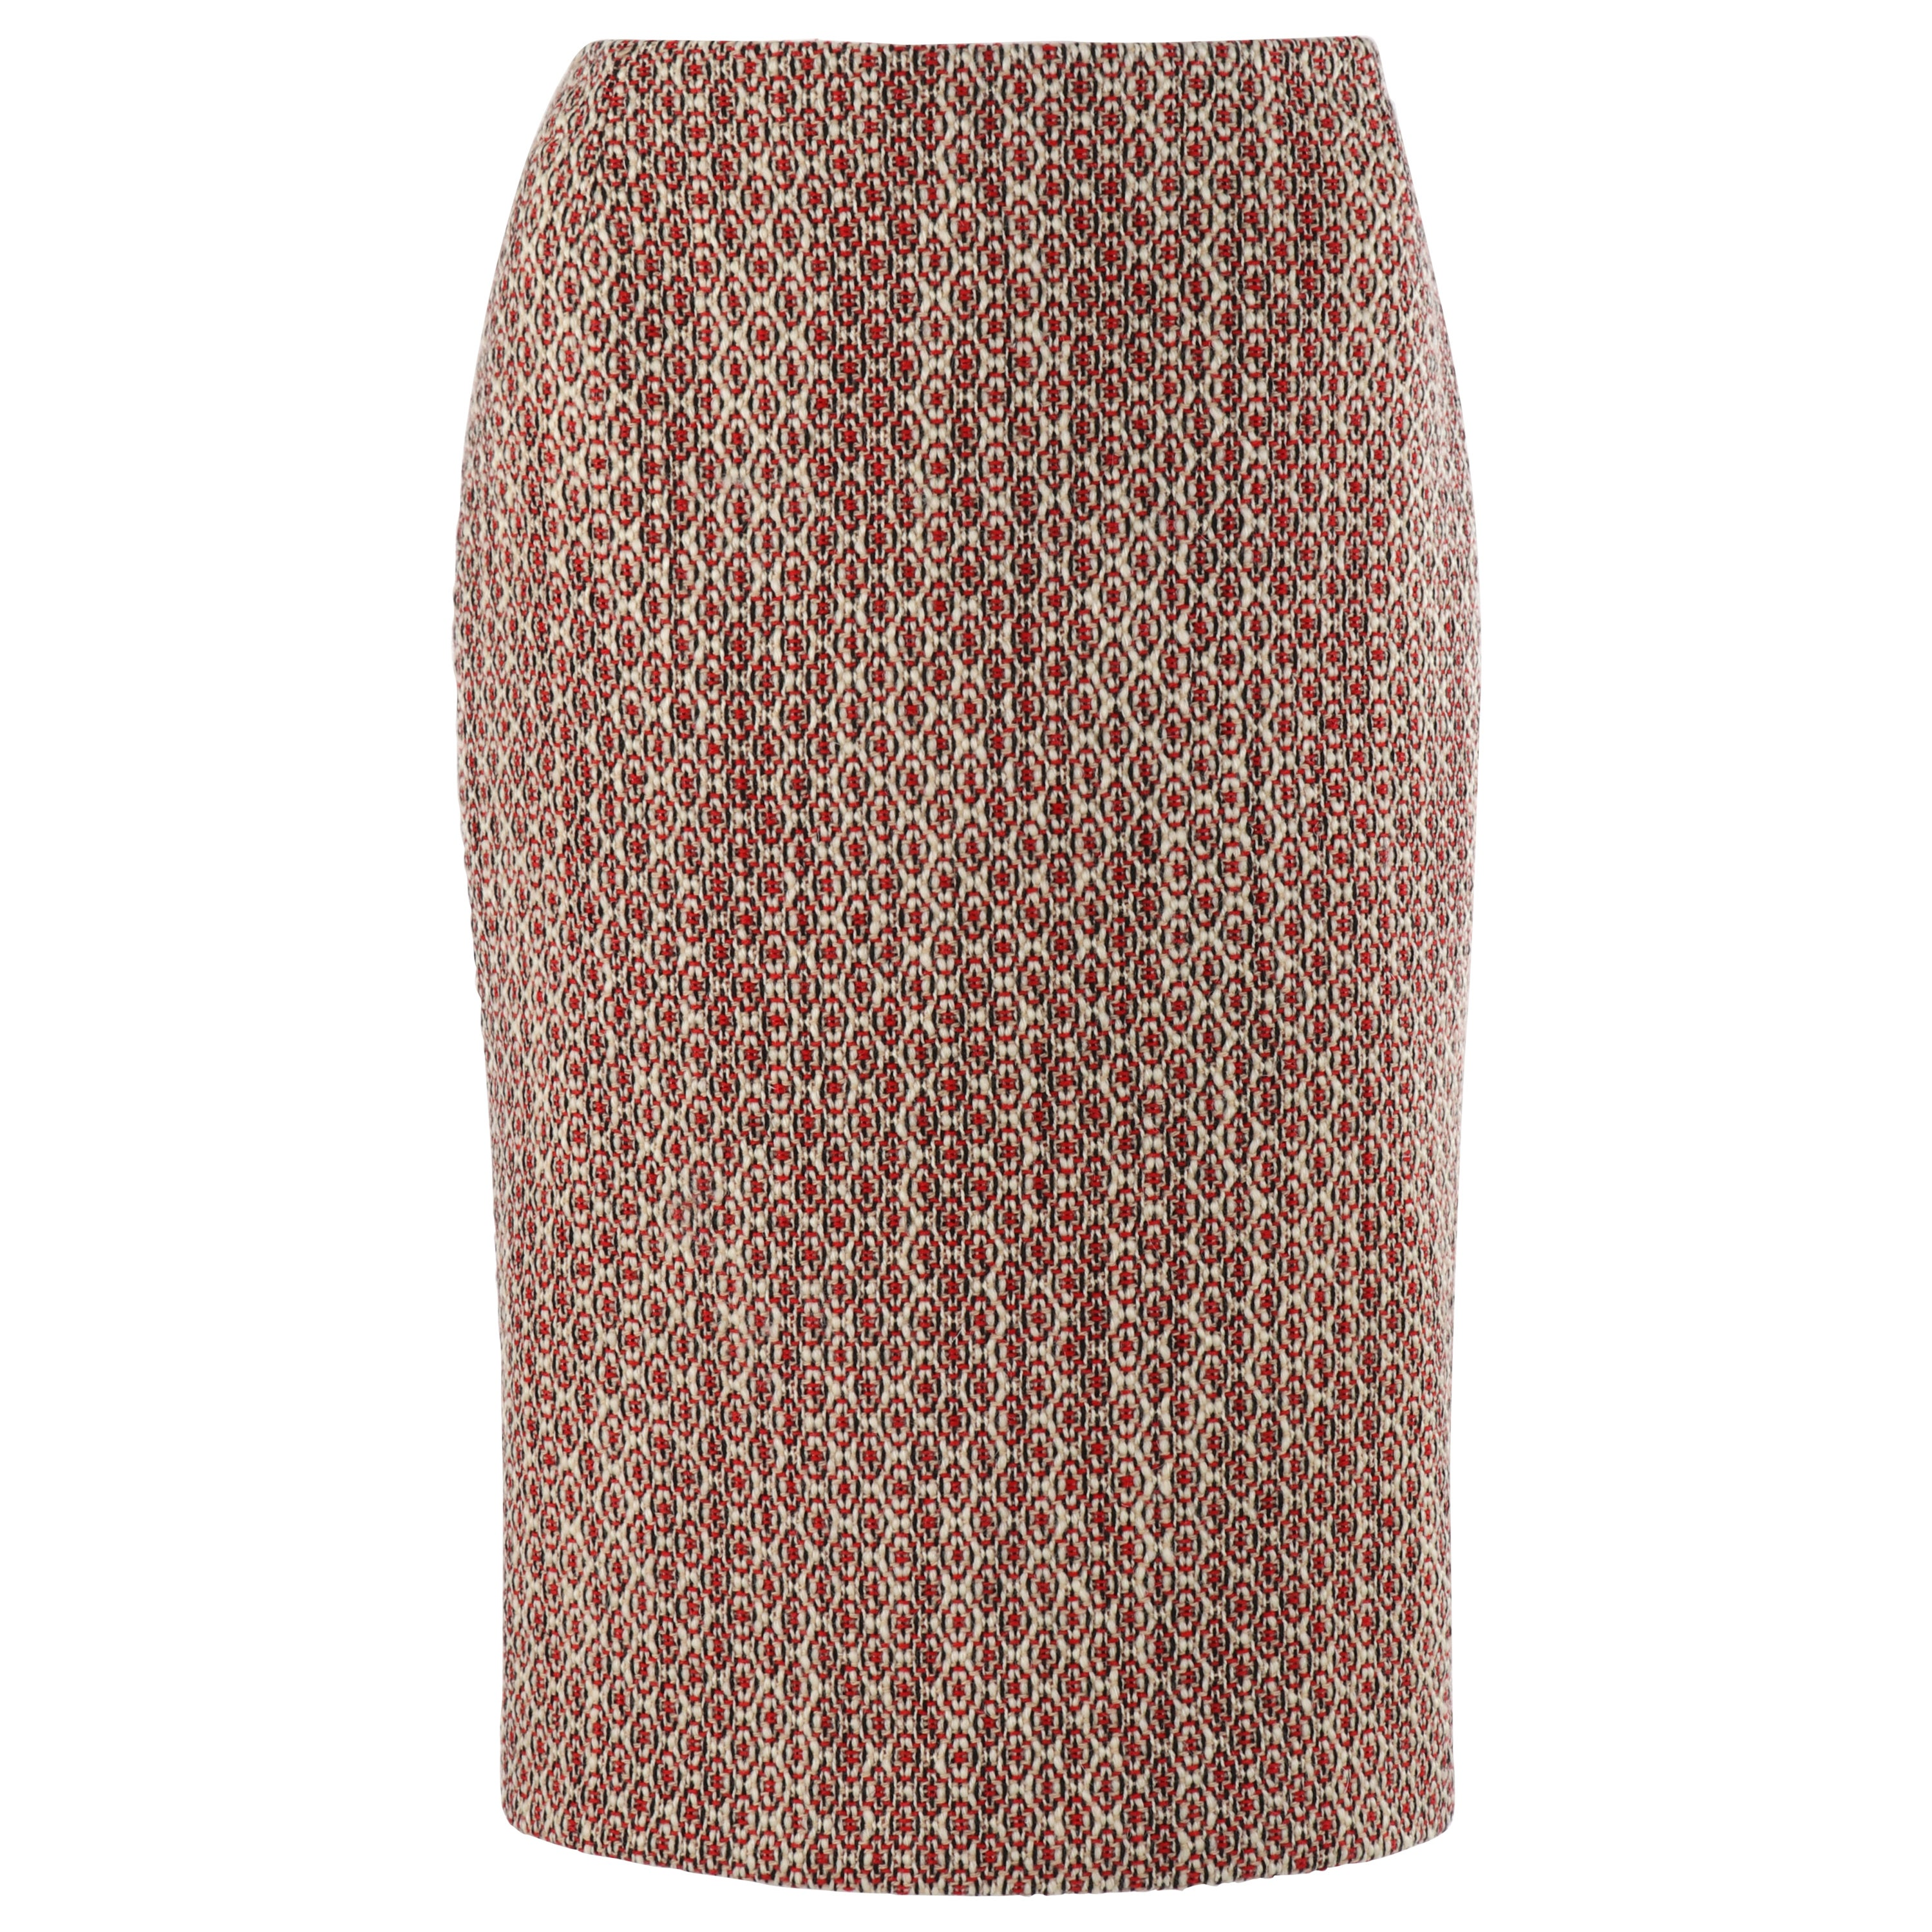 ALEXANDER McQUEEN c.2007 Patterned Fringe Wool Pencil Back Full Zip Skirt